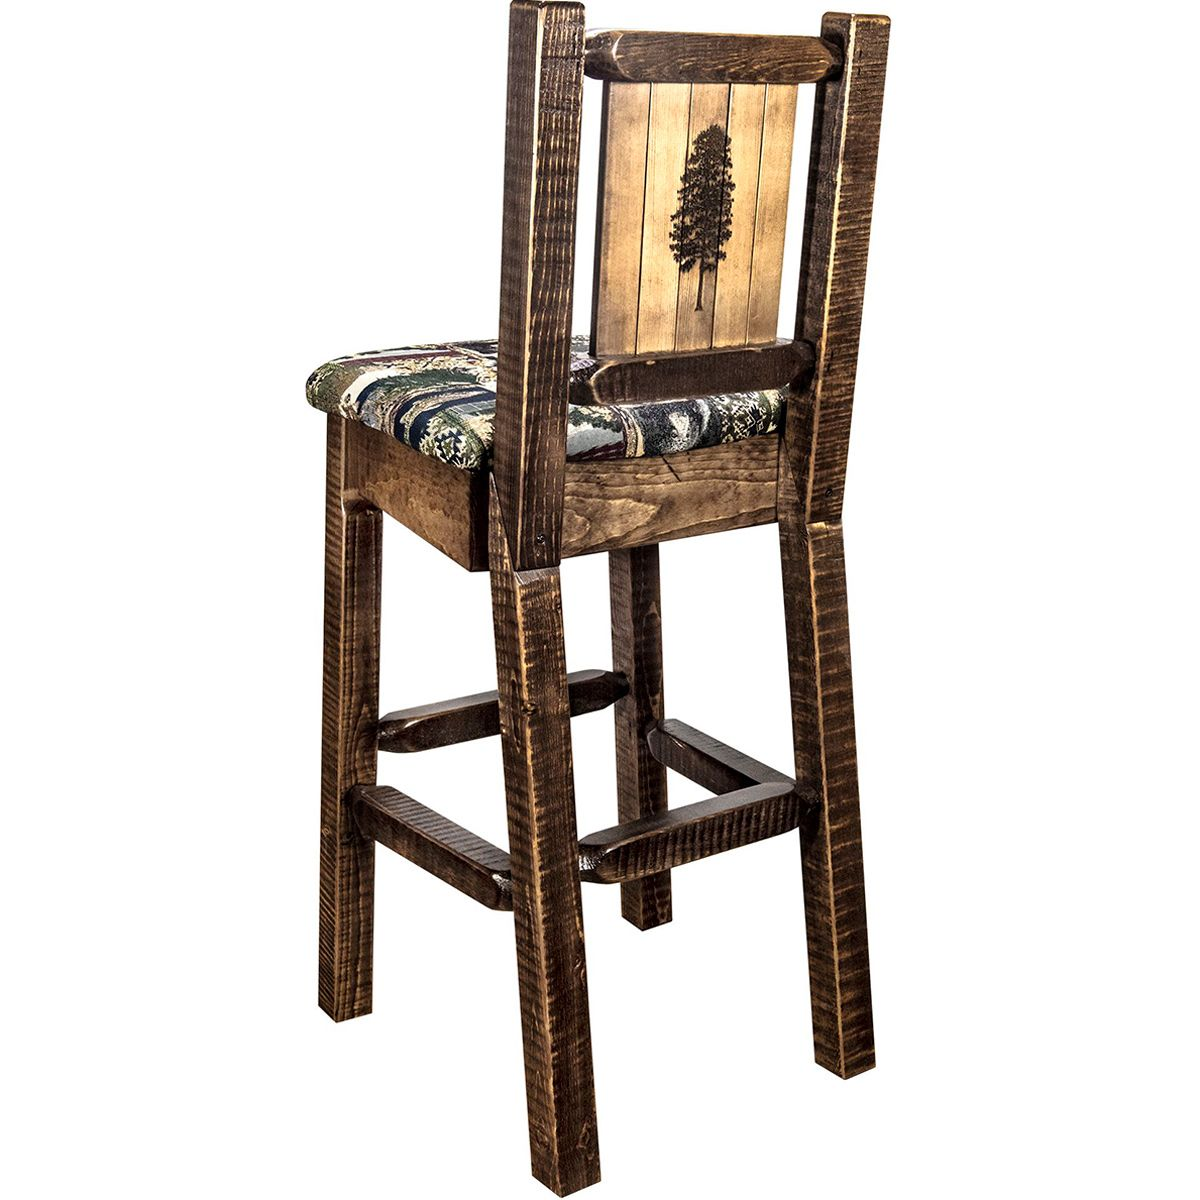 Ranchman's Counter Stool with Back & Laser-Engraved Pine Tree Design